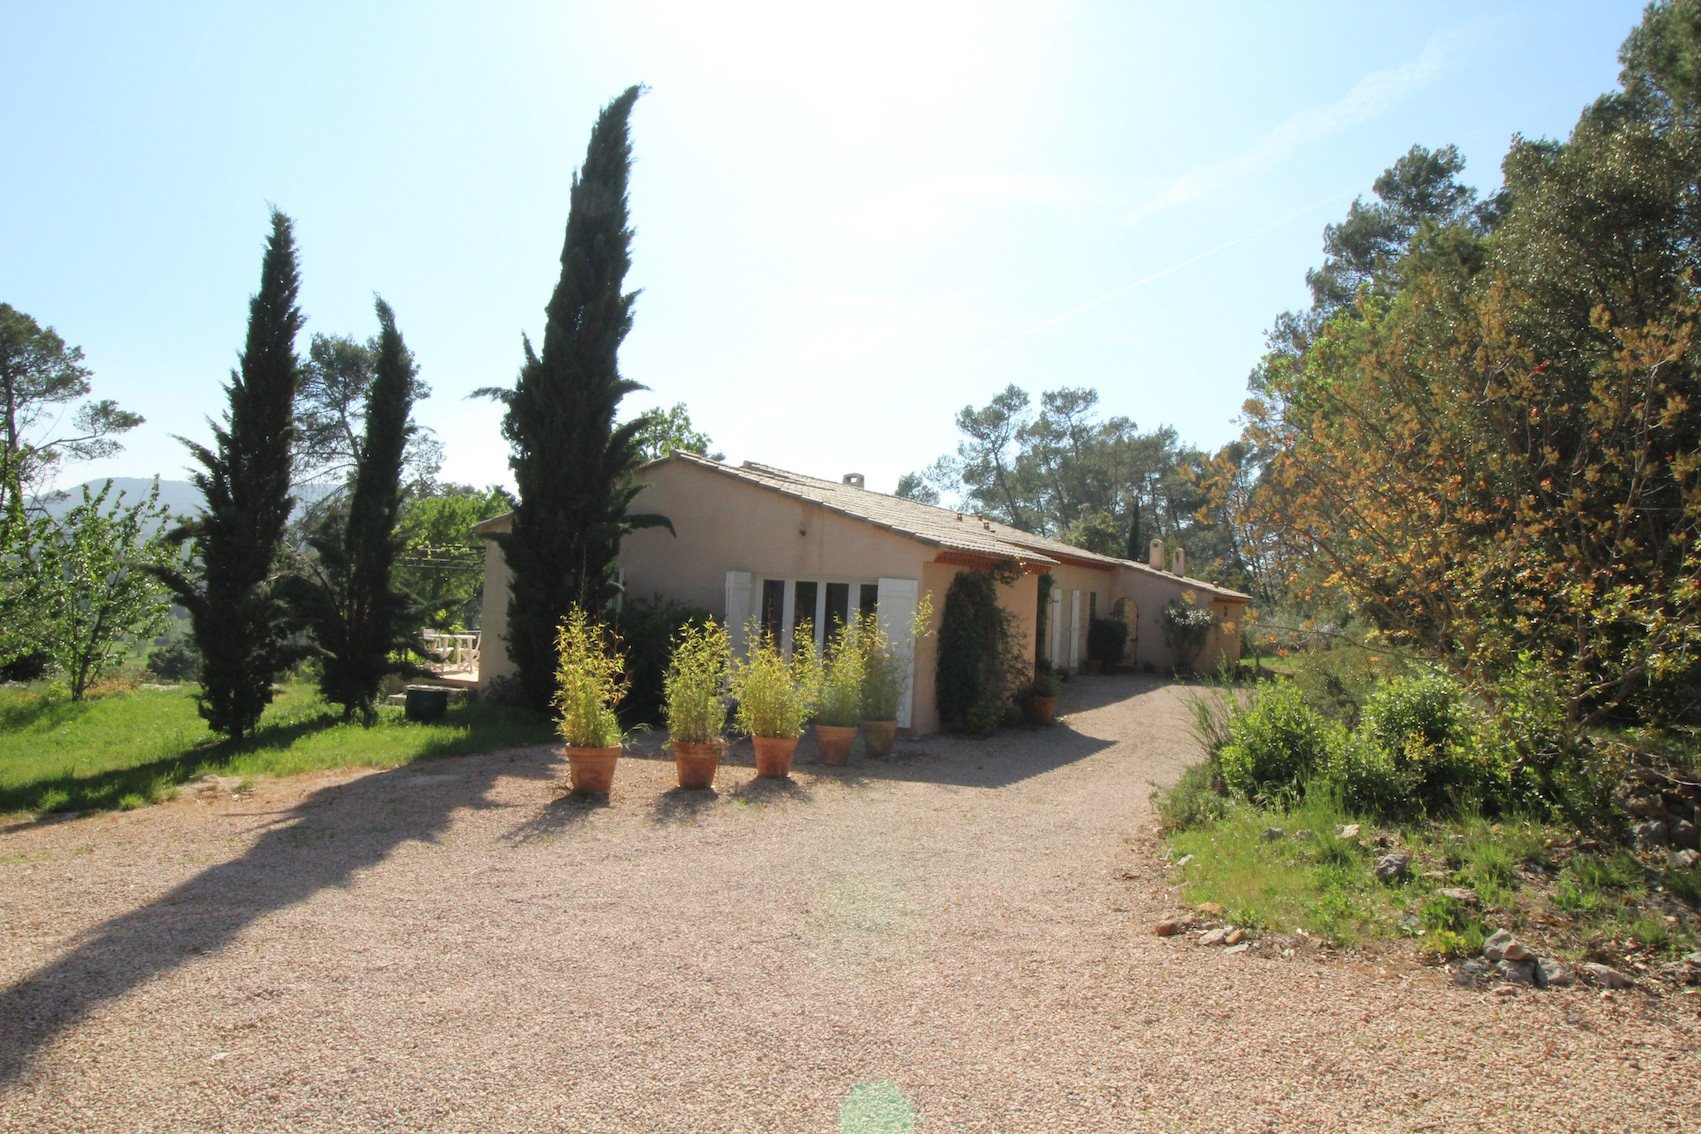 Sainte Anastasie sur Issole, an exceptionally quiet and preserved environment in the region